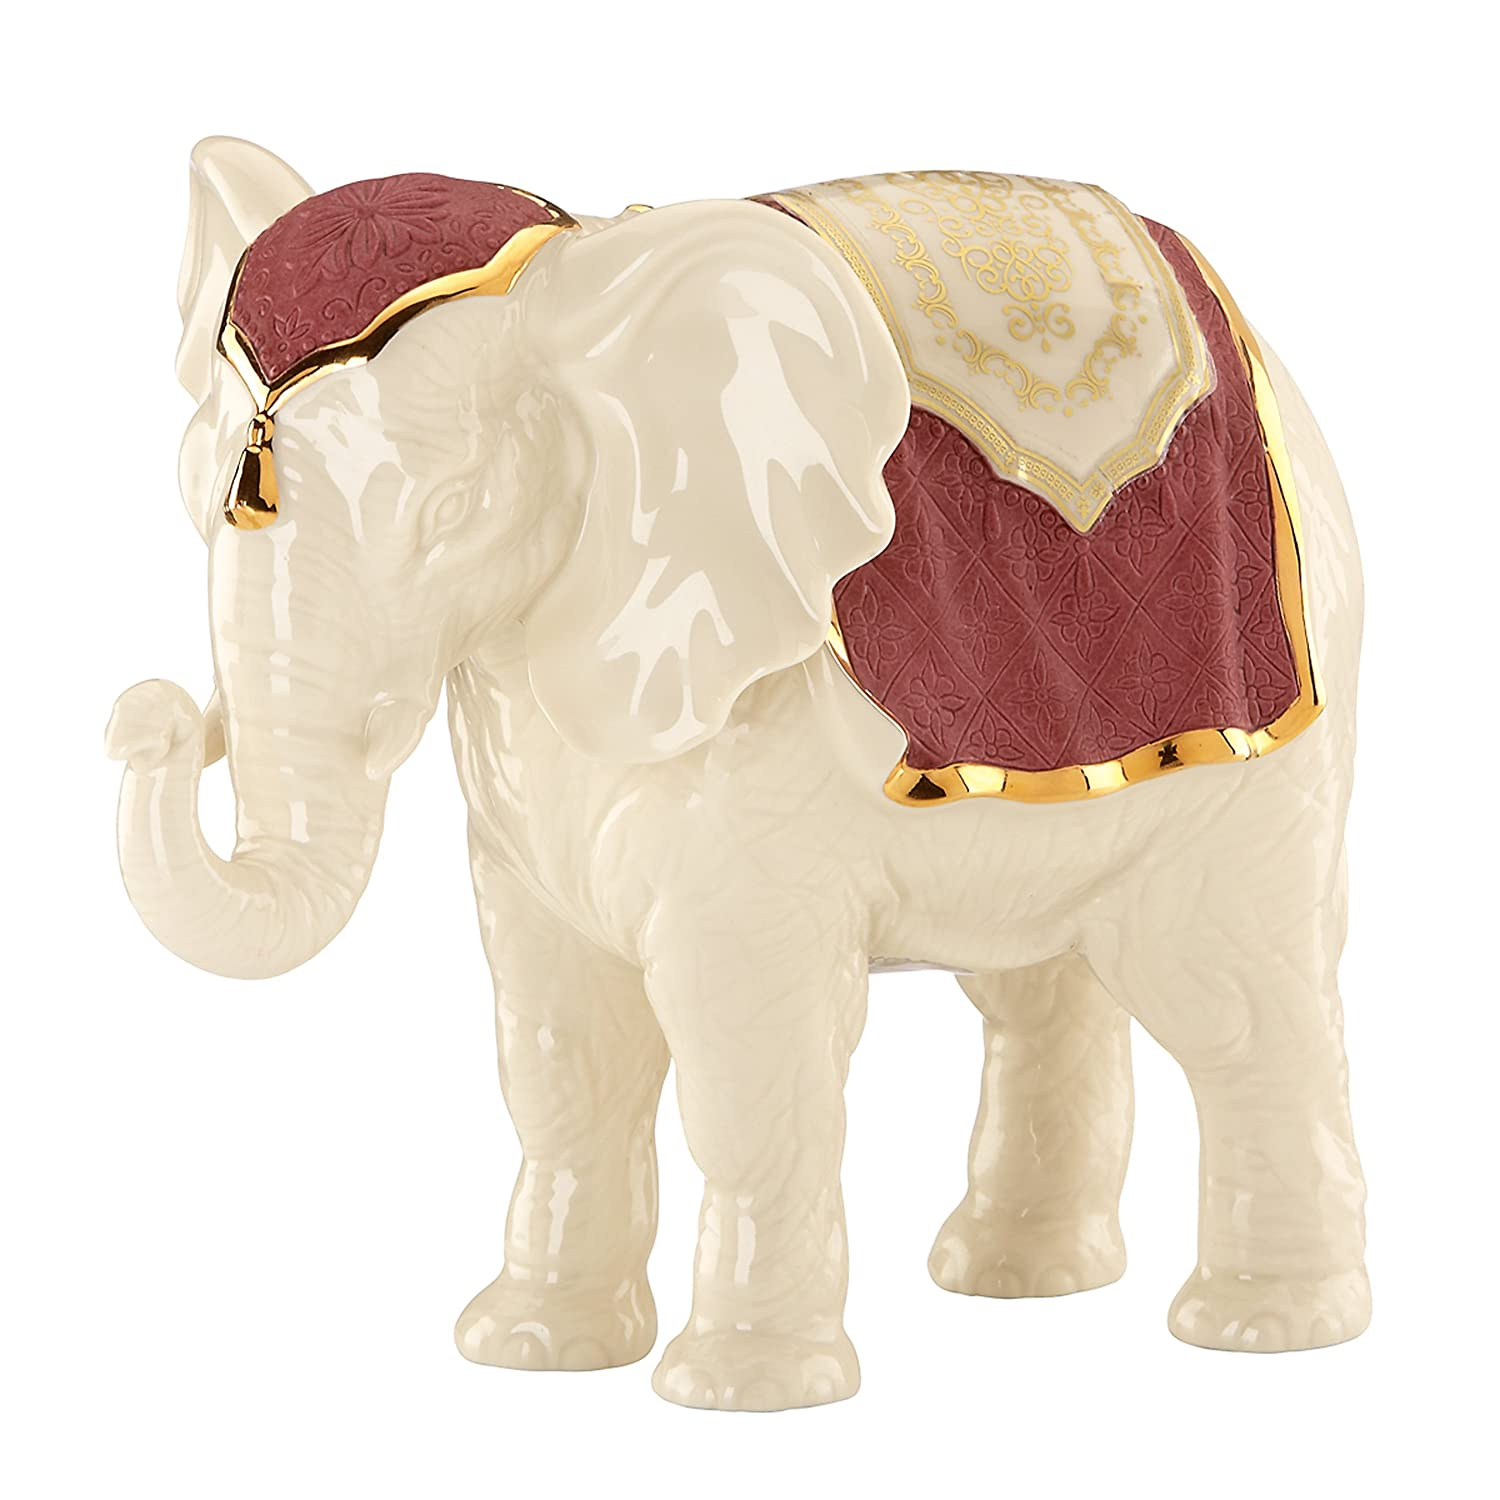 Amazon.com: Lenox First Blessing Nativity Elephant: Home & Kitchen